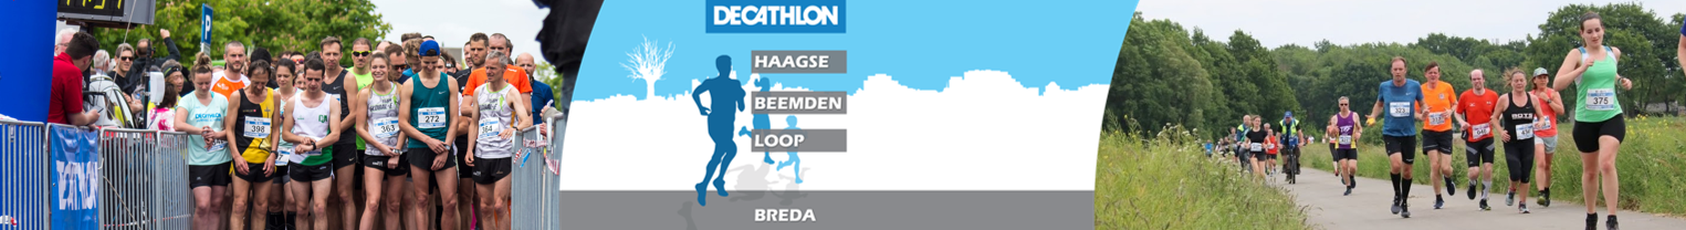 Decathlon Haagse Beemden Loop